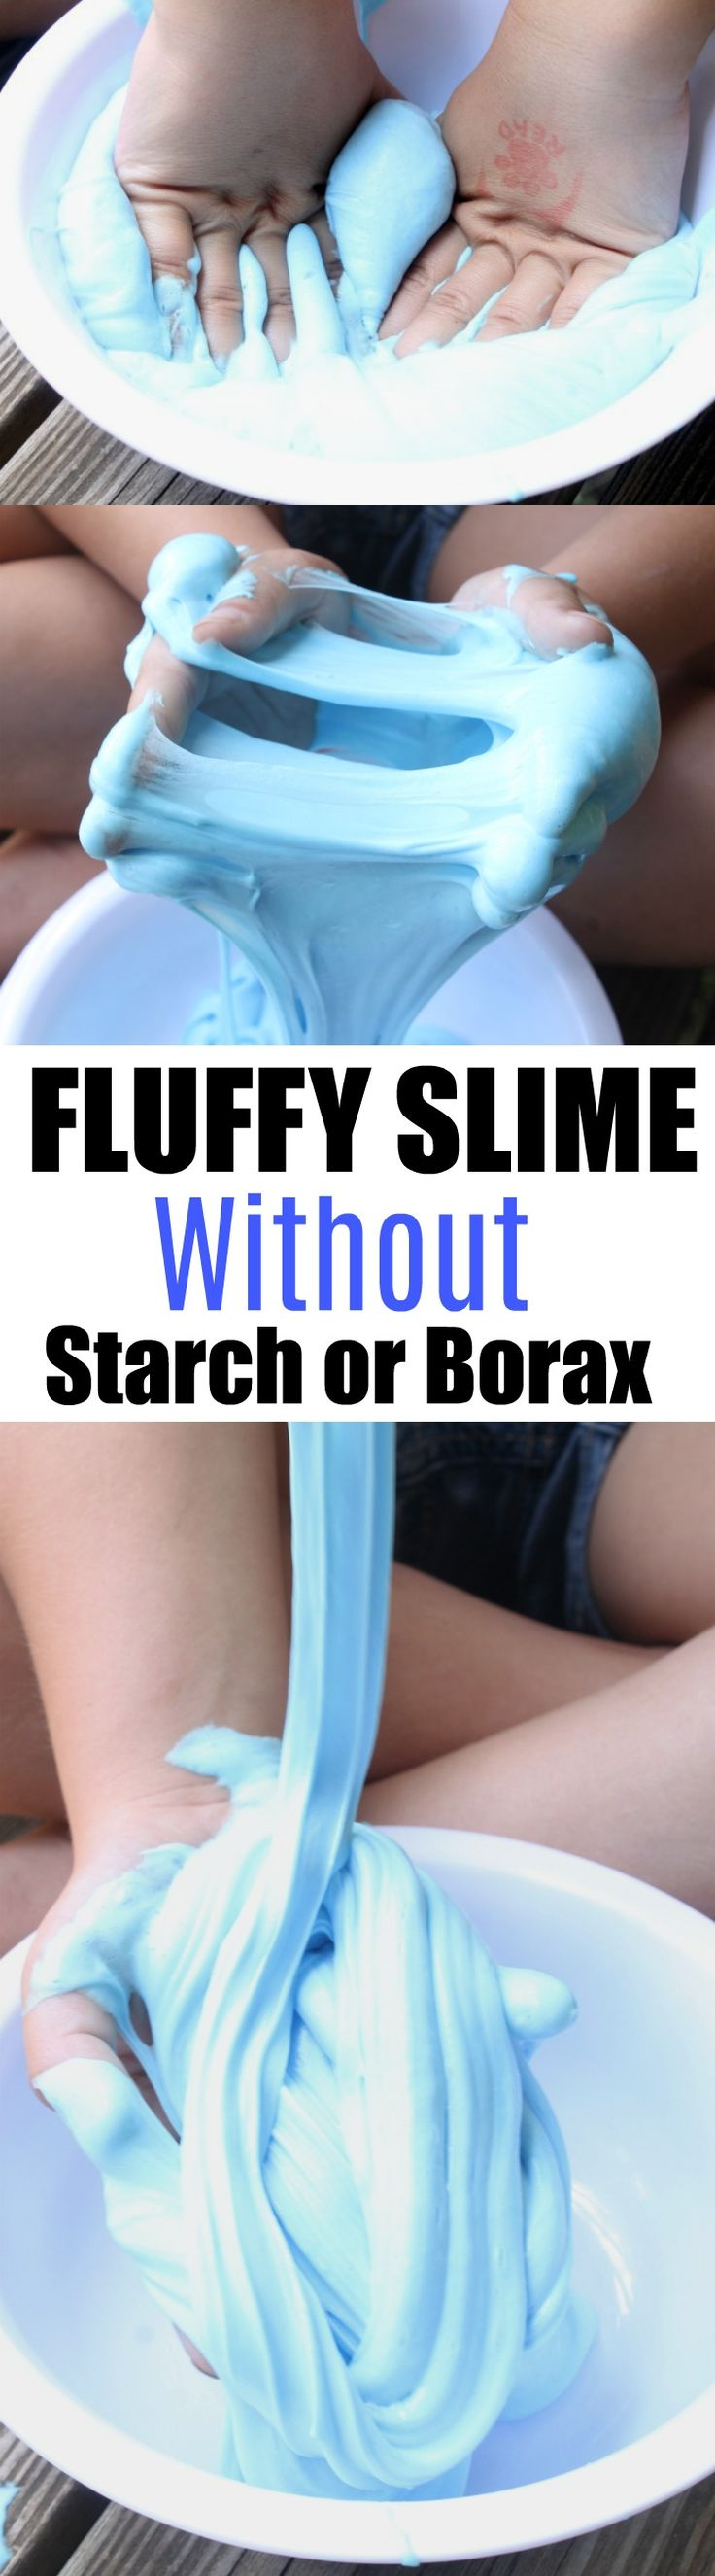 SUPER Fluffy Slime made without Starch or Borax. This is a safe slime recipe made especially for kids. It uses saline solution and baking soda and has the best fluffy slime consistency. This slime is extra soft and squishy. You'll love it.